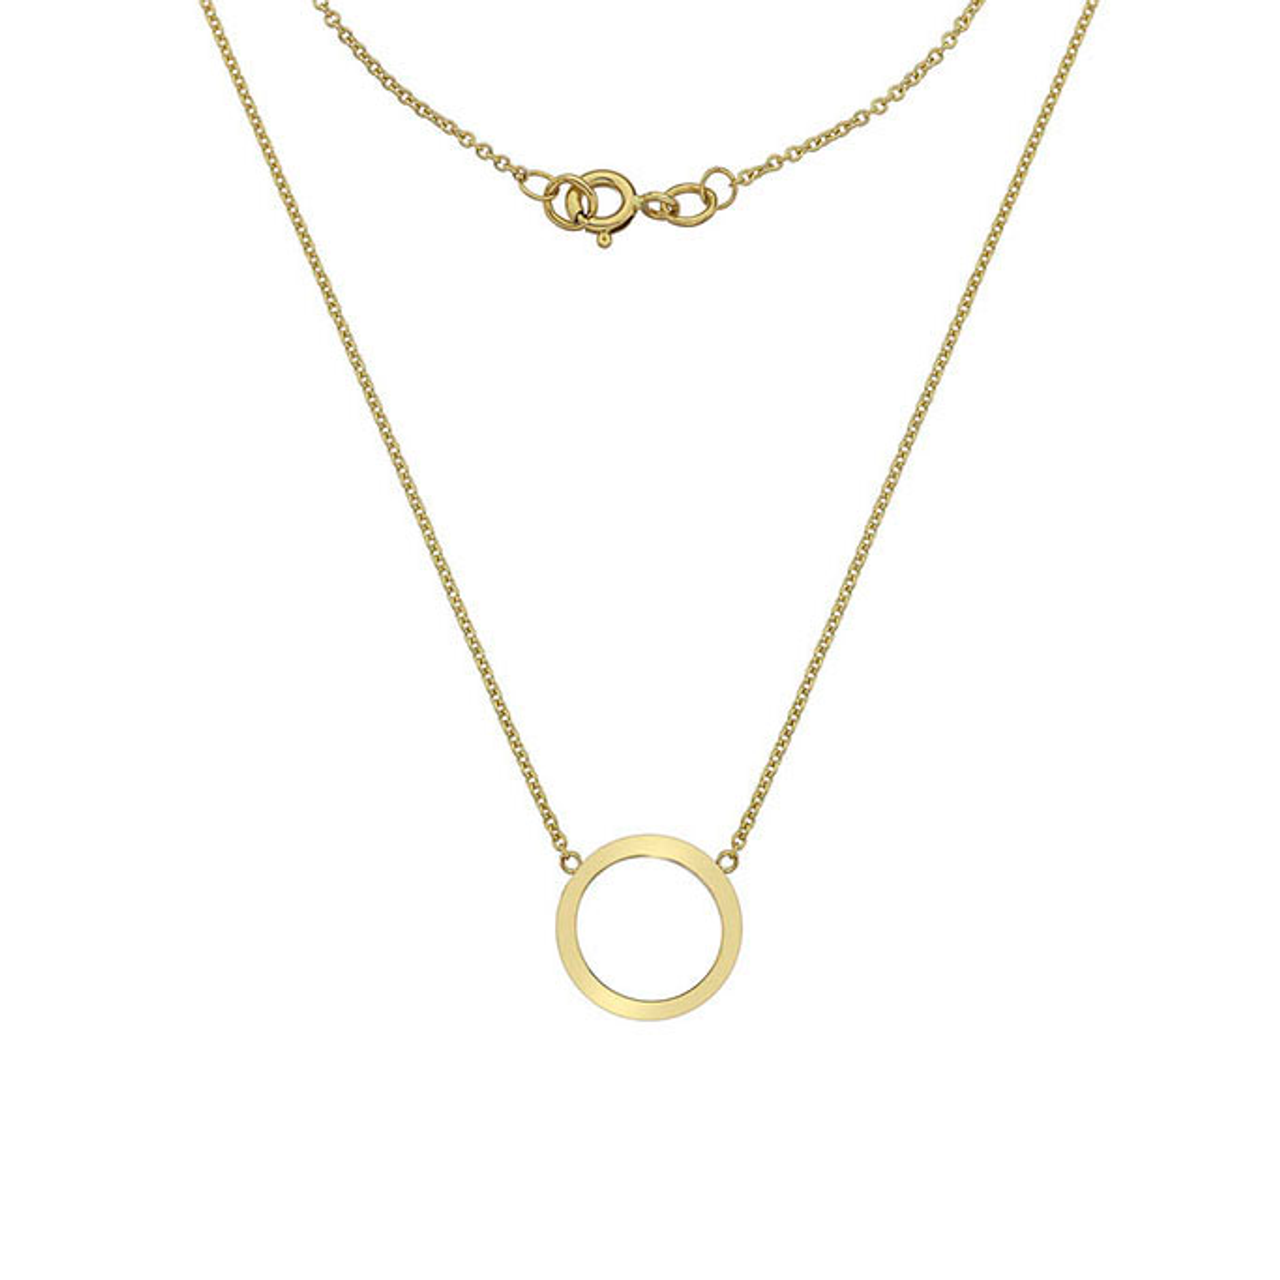 9ct Yellow Gold open circle Pendant on Chain.